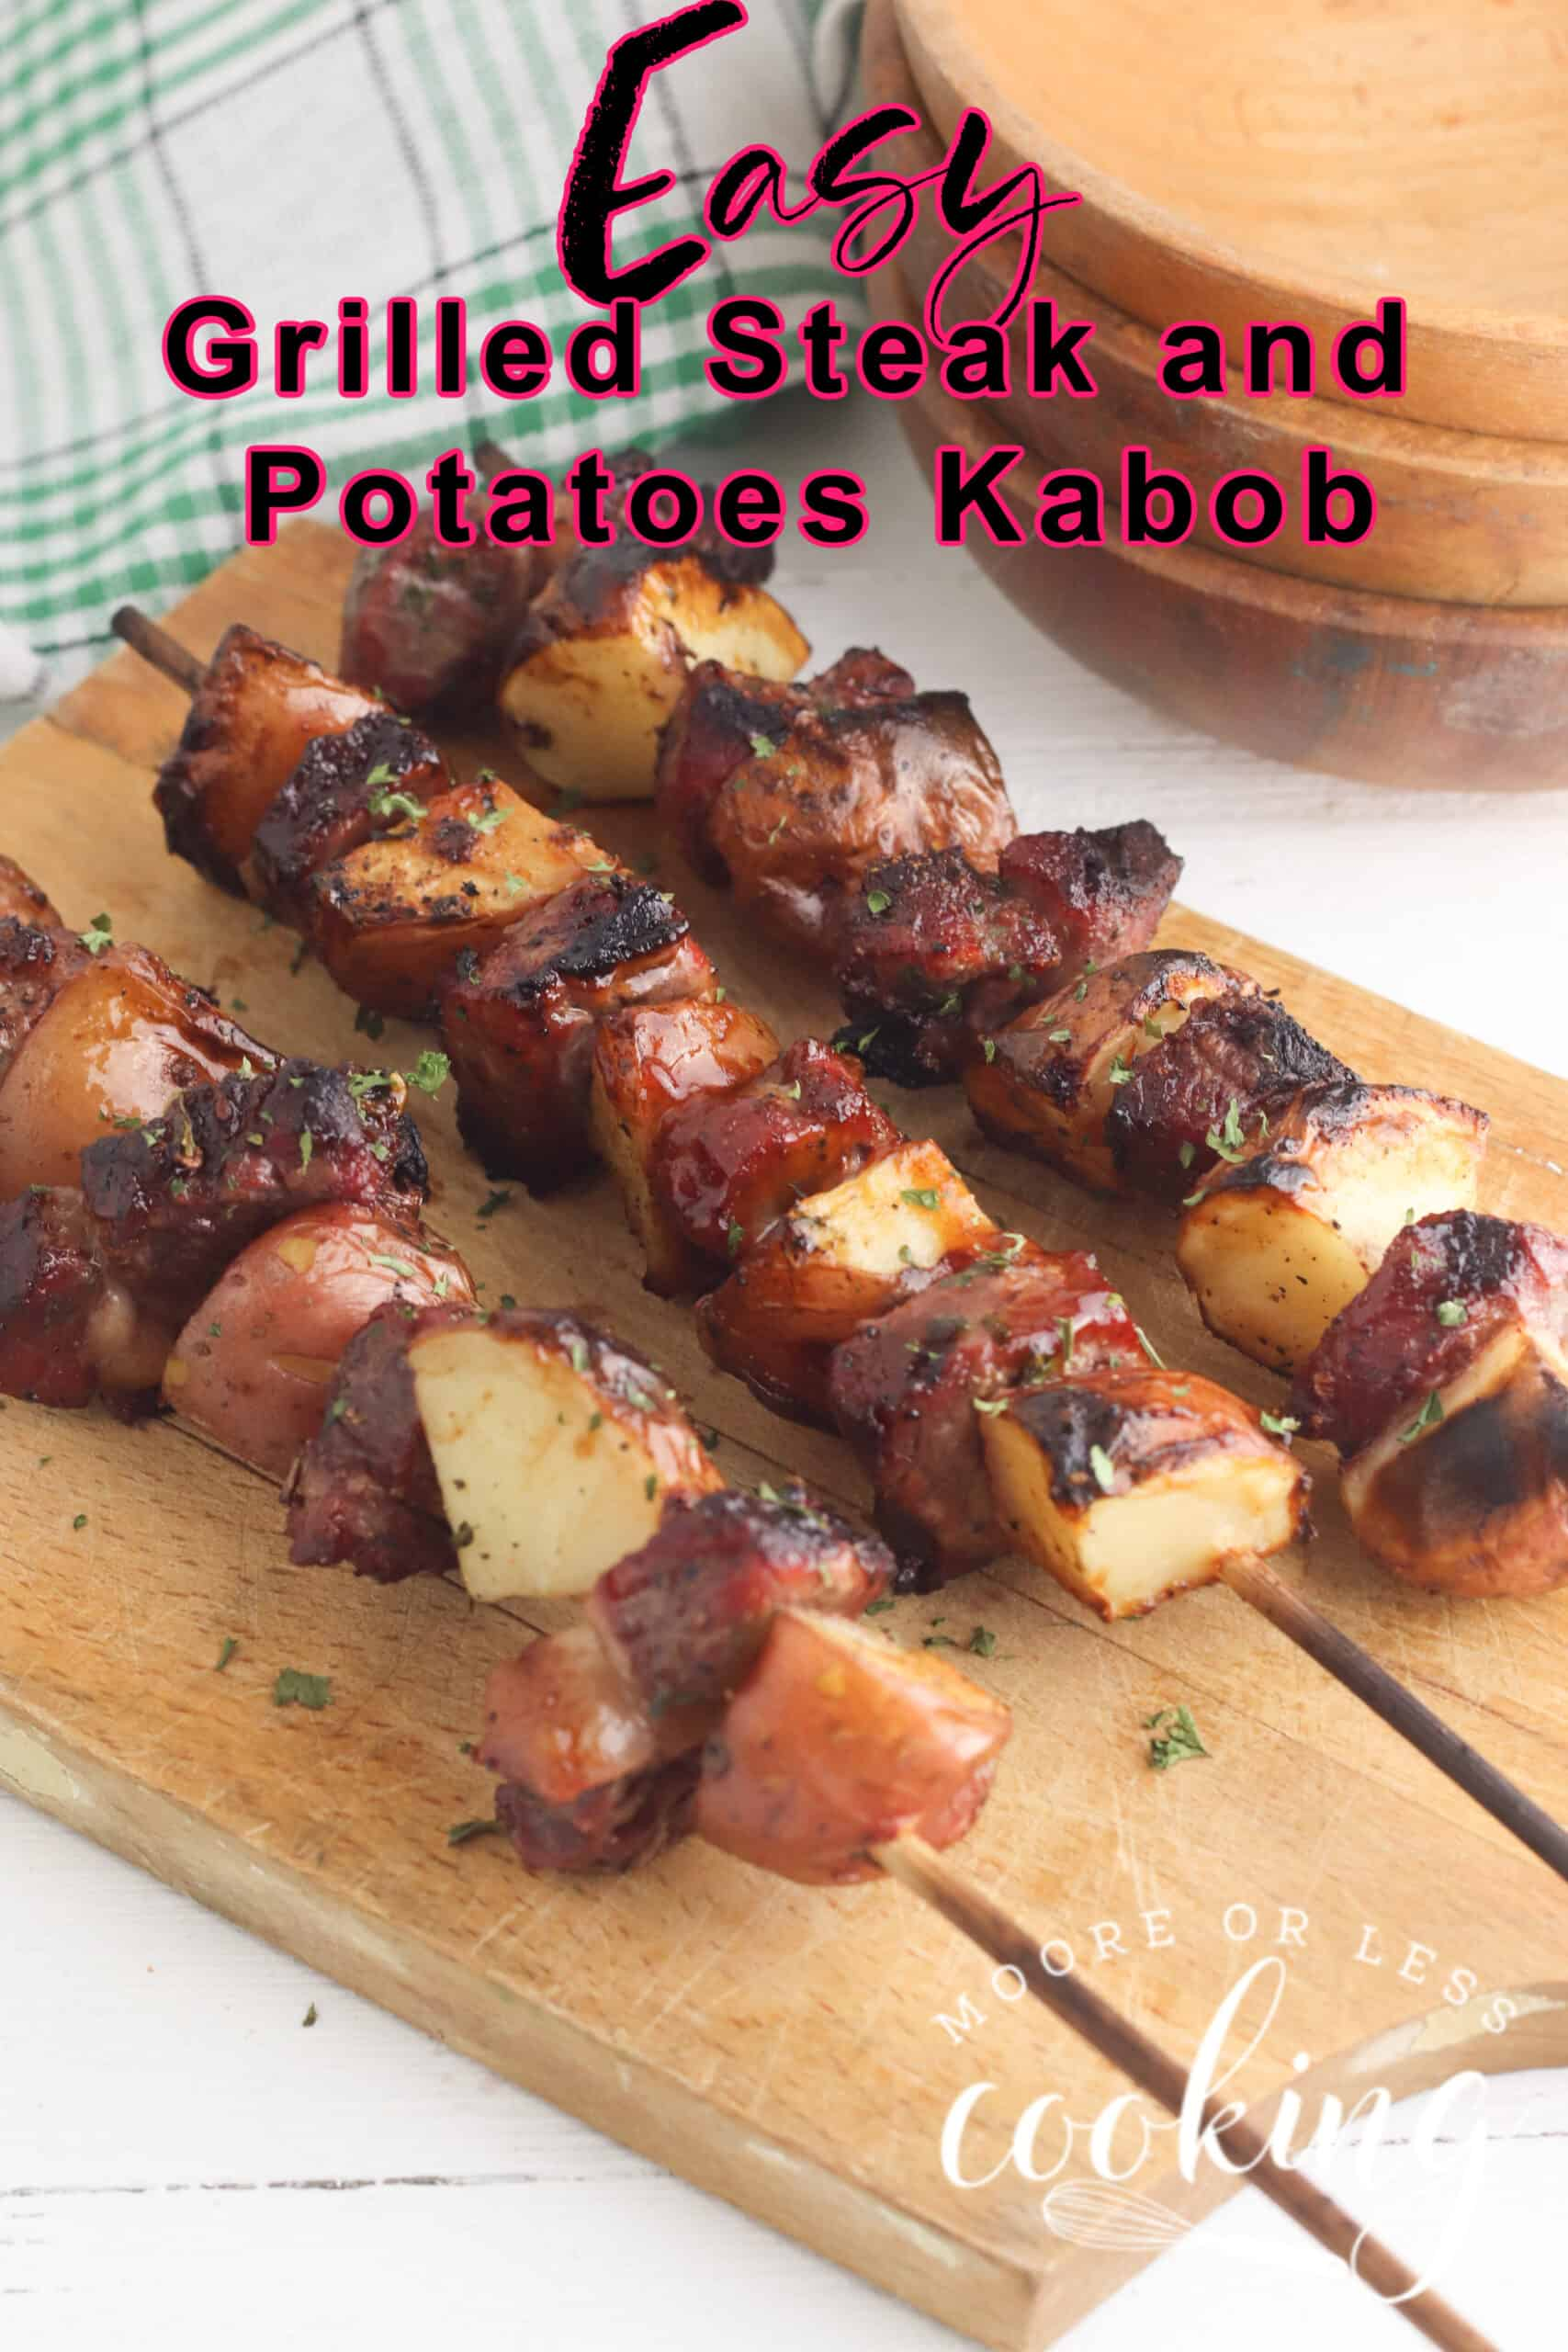 Simple to make Steak and Potato Kabobs are delicious and can be ready so quickly on the grill. Succulent and juicy steak and flavorful caramelized potatoes are perfect for any night dinner. via @Mooreorlesscook